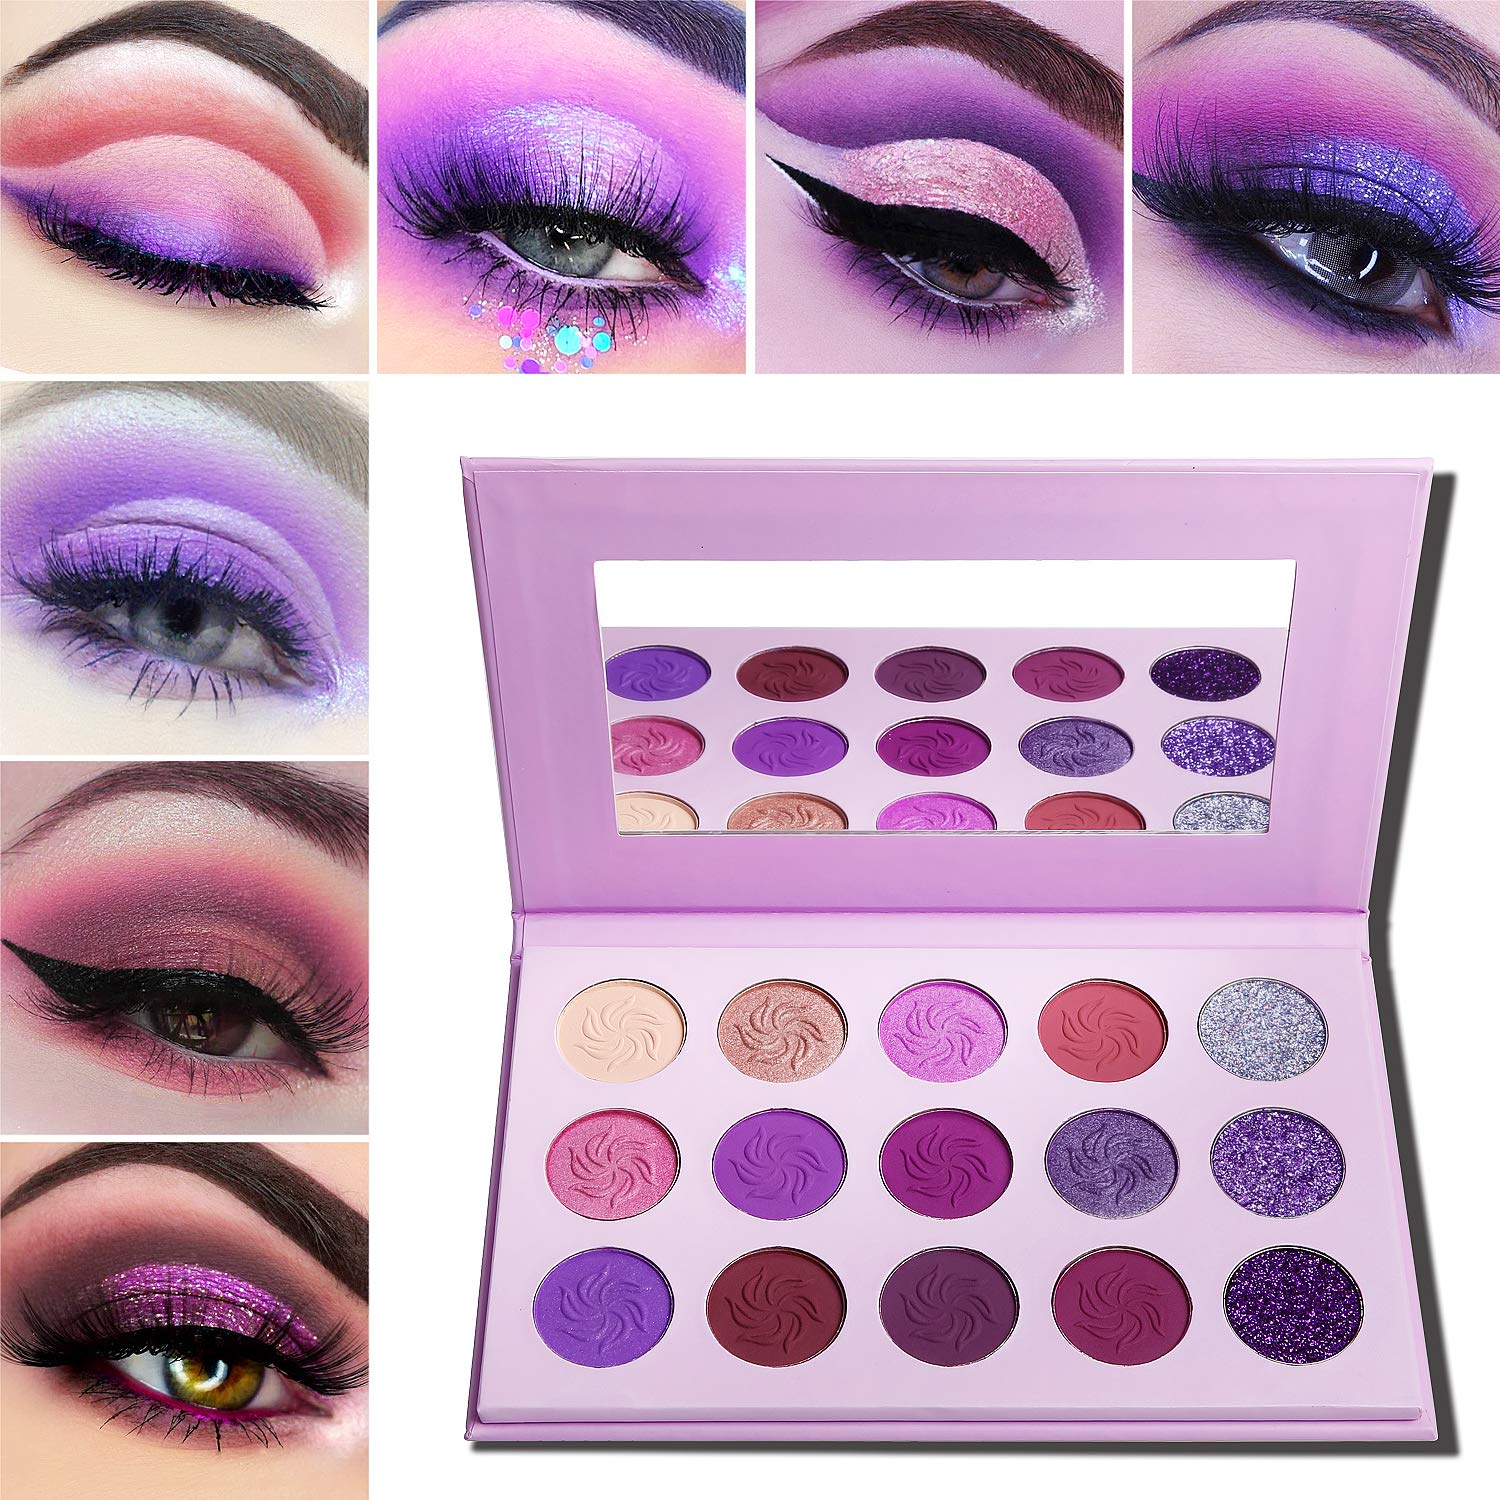 Makeup Palettes Eyeshadow Matte and Glitter,Afflano Professional Highly Pigmented 15 Color,Dream Purple Pink Dark Red Violet Cute Bright Shimmer Small Travel Eyeshadow Pallet Cosmetic for Girls Women